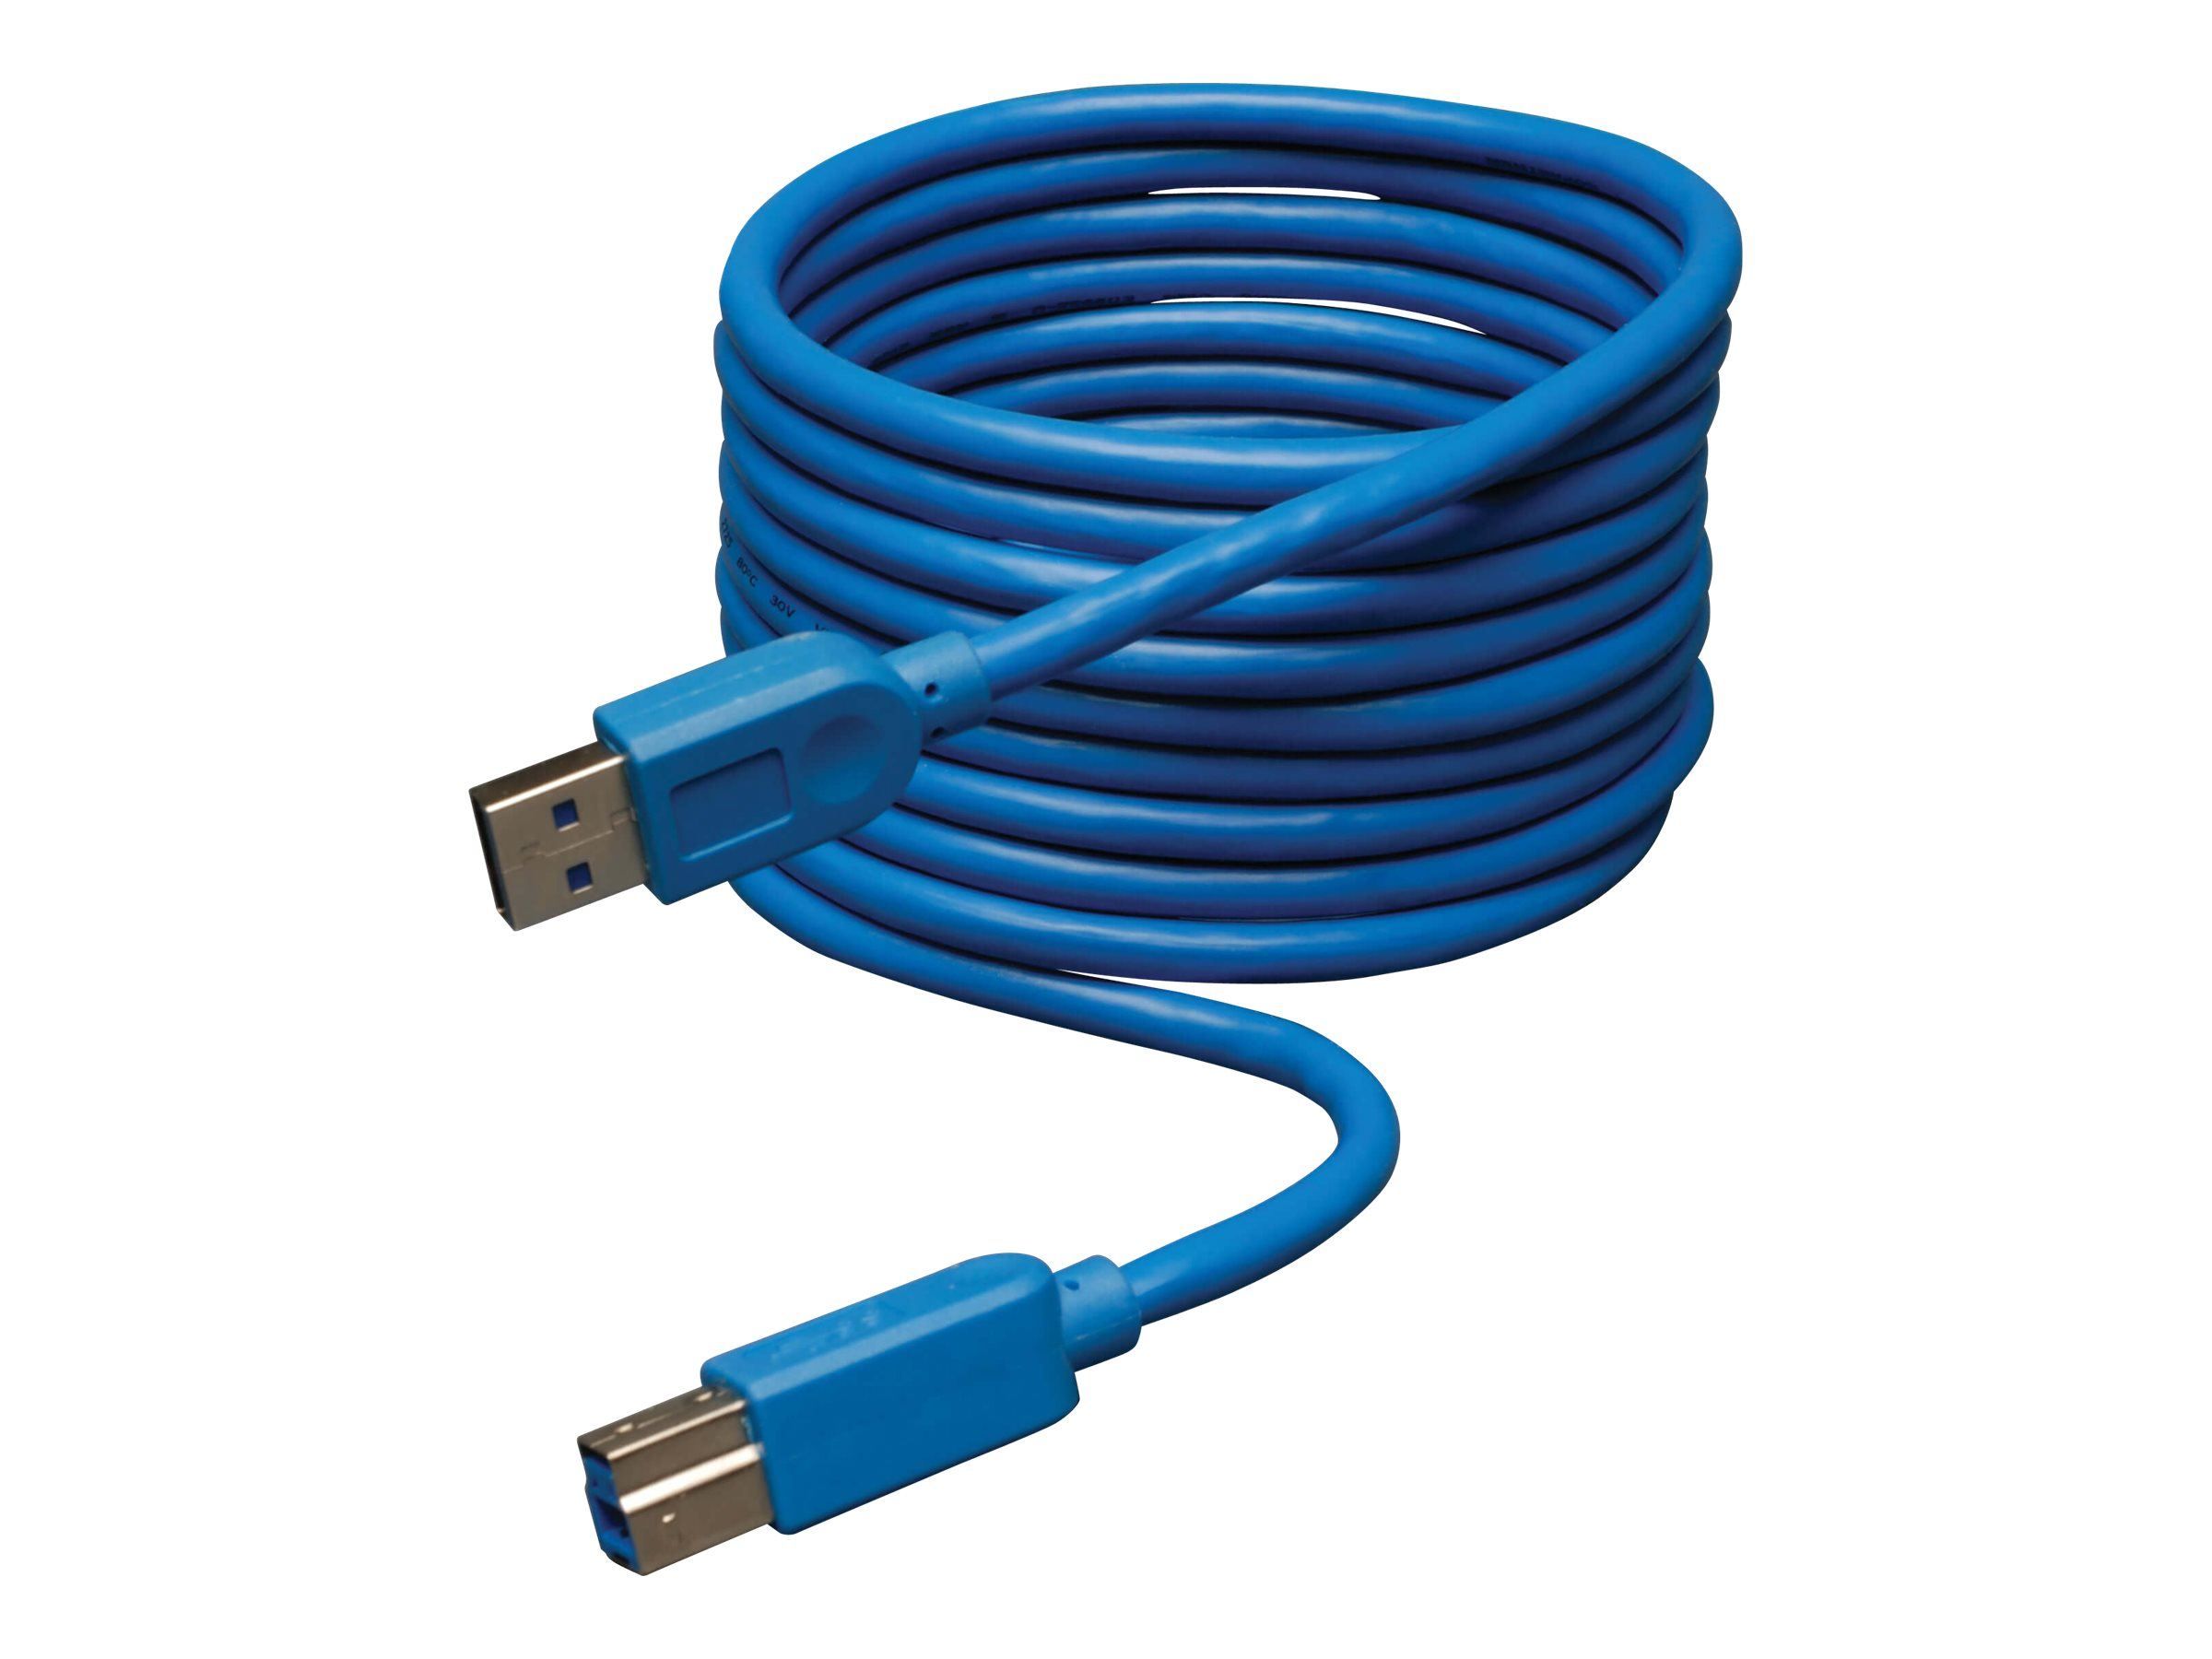 Tripp Lite 10ft USB 3.0 SuperSpeed Device Cable 5 Gbps A Male to B Male 10' - USB cable - 3 m